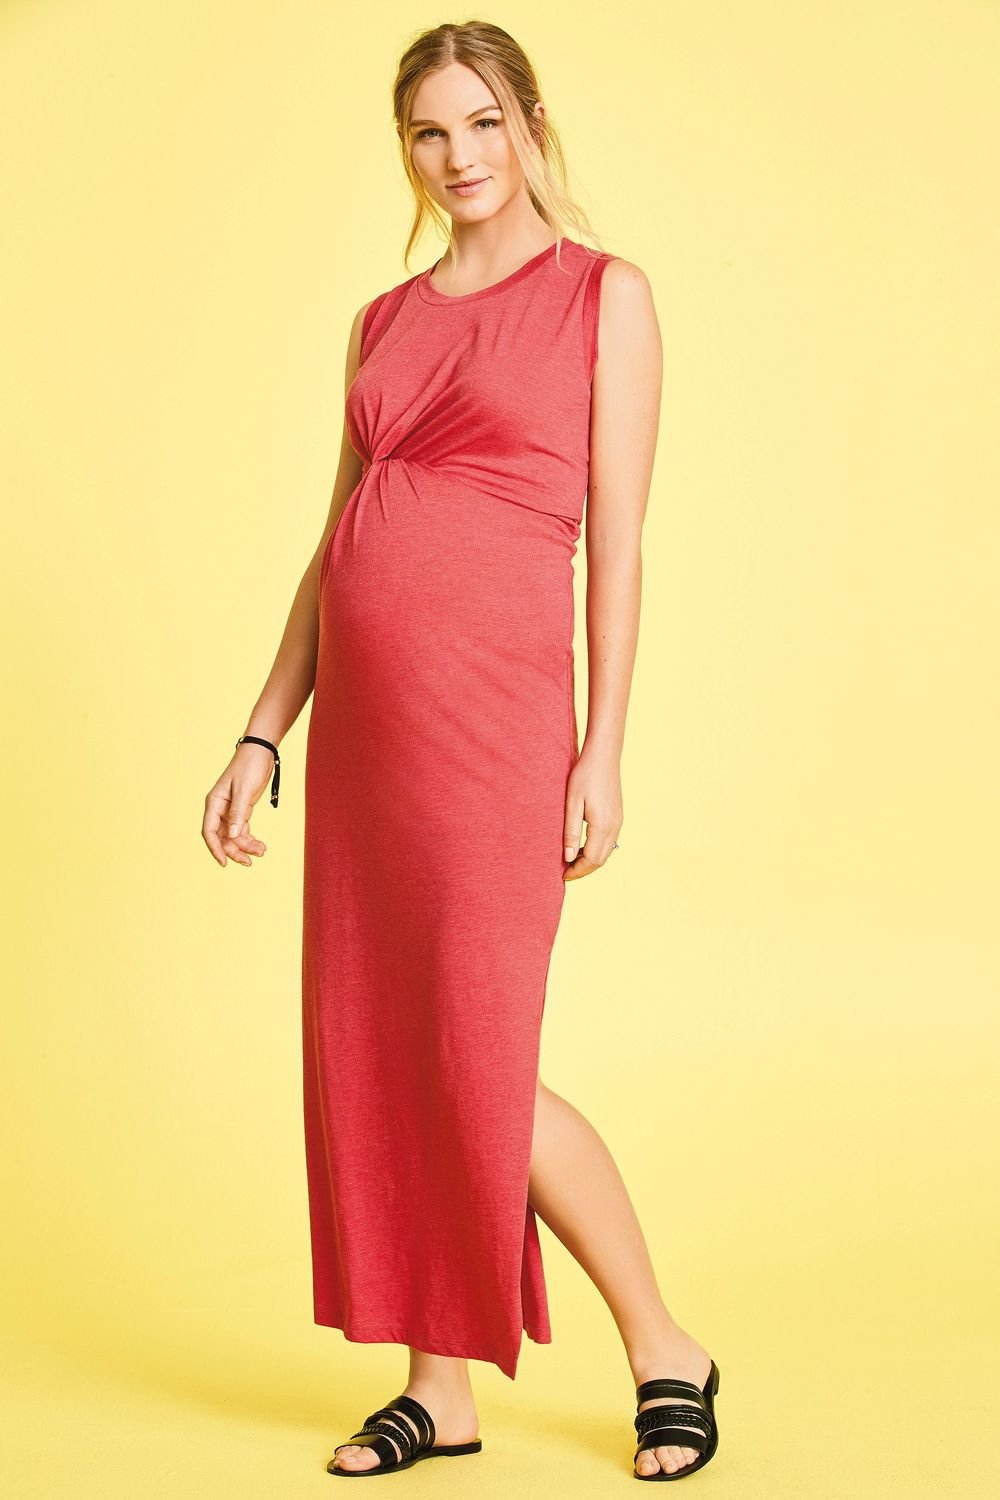 Discover maternity clothing on sale for women at ASOS. Shop the latest collection of maternity for women on sale.